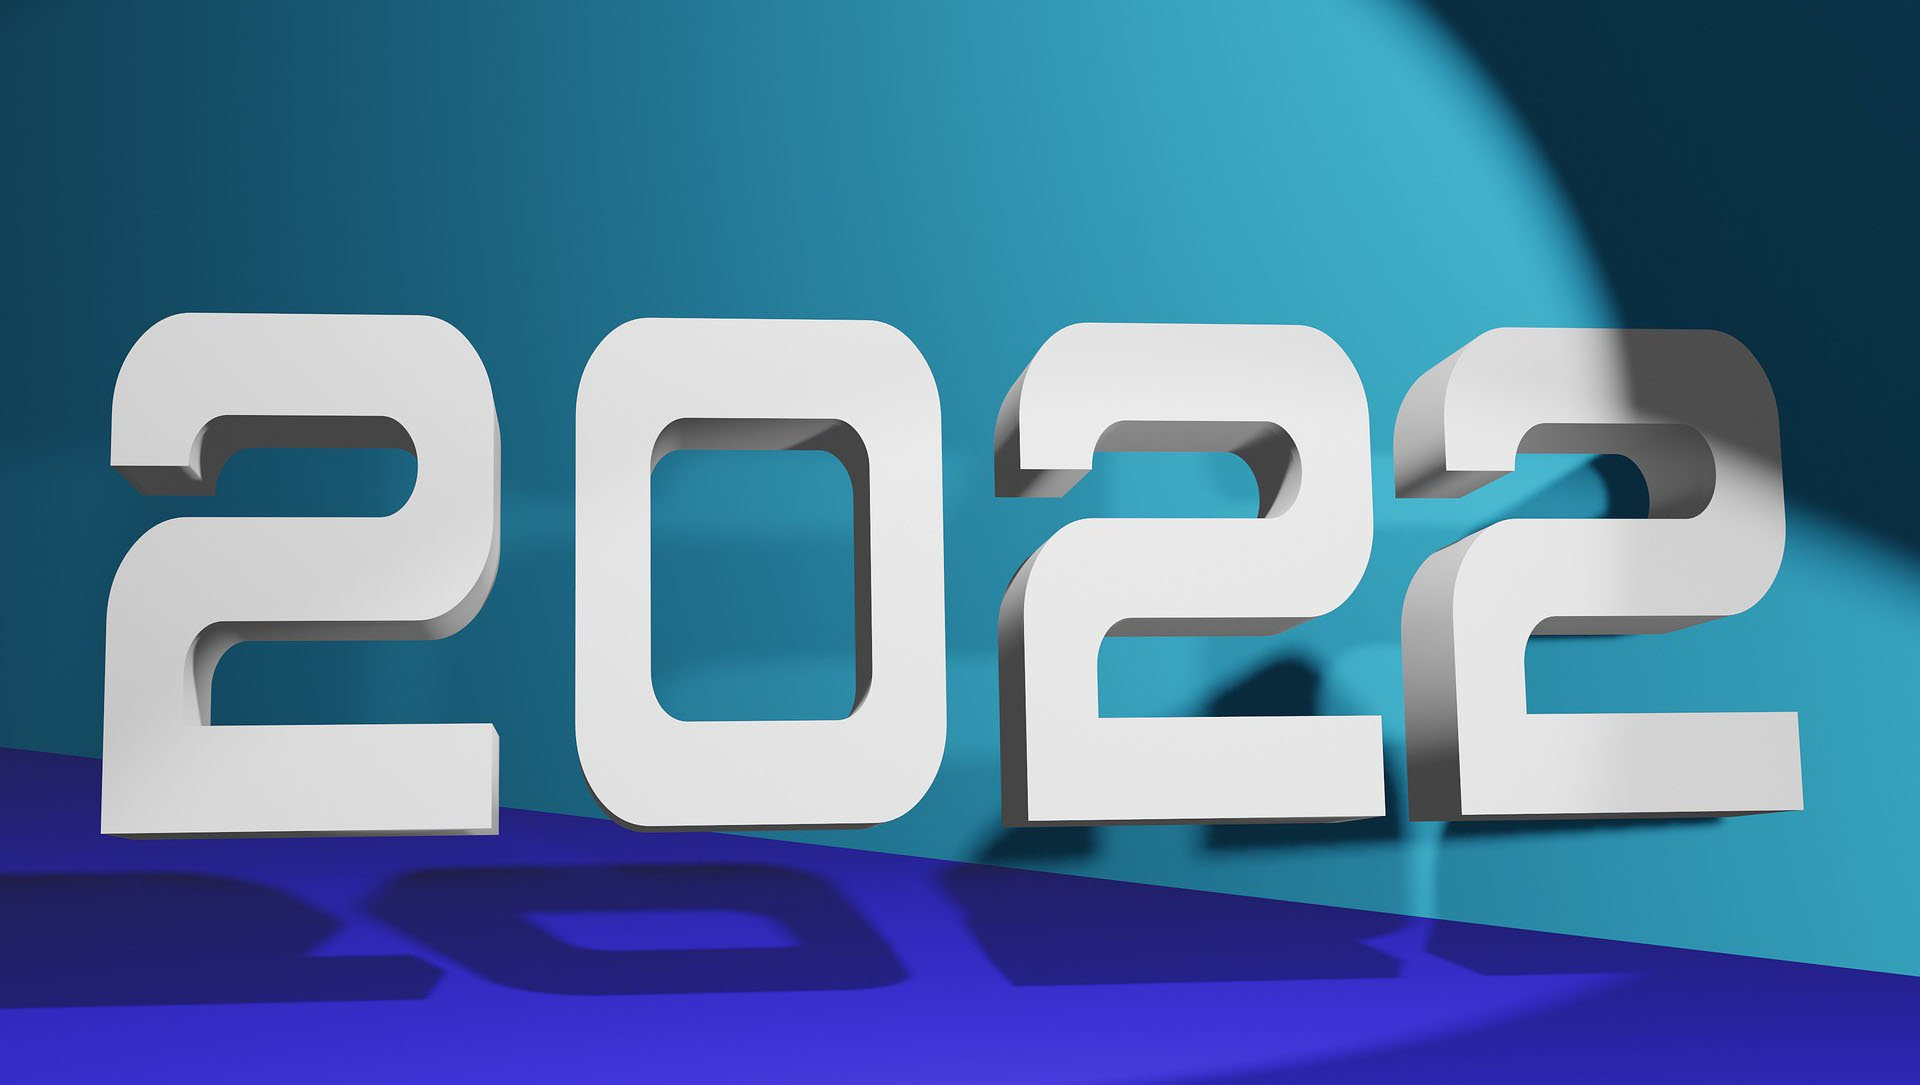 Medicare's Proposed Rule For 2022 Has Few Changes for Radiology, but Likely a Cut in Reimbursement